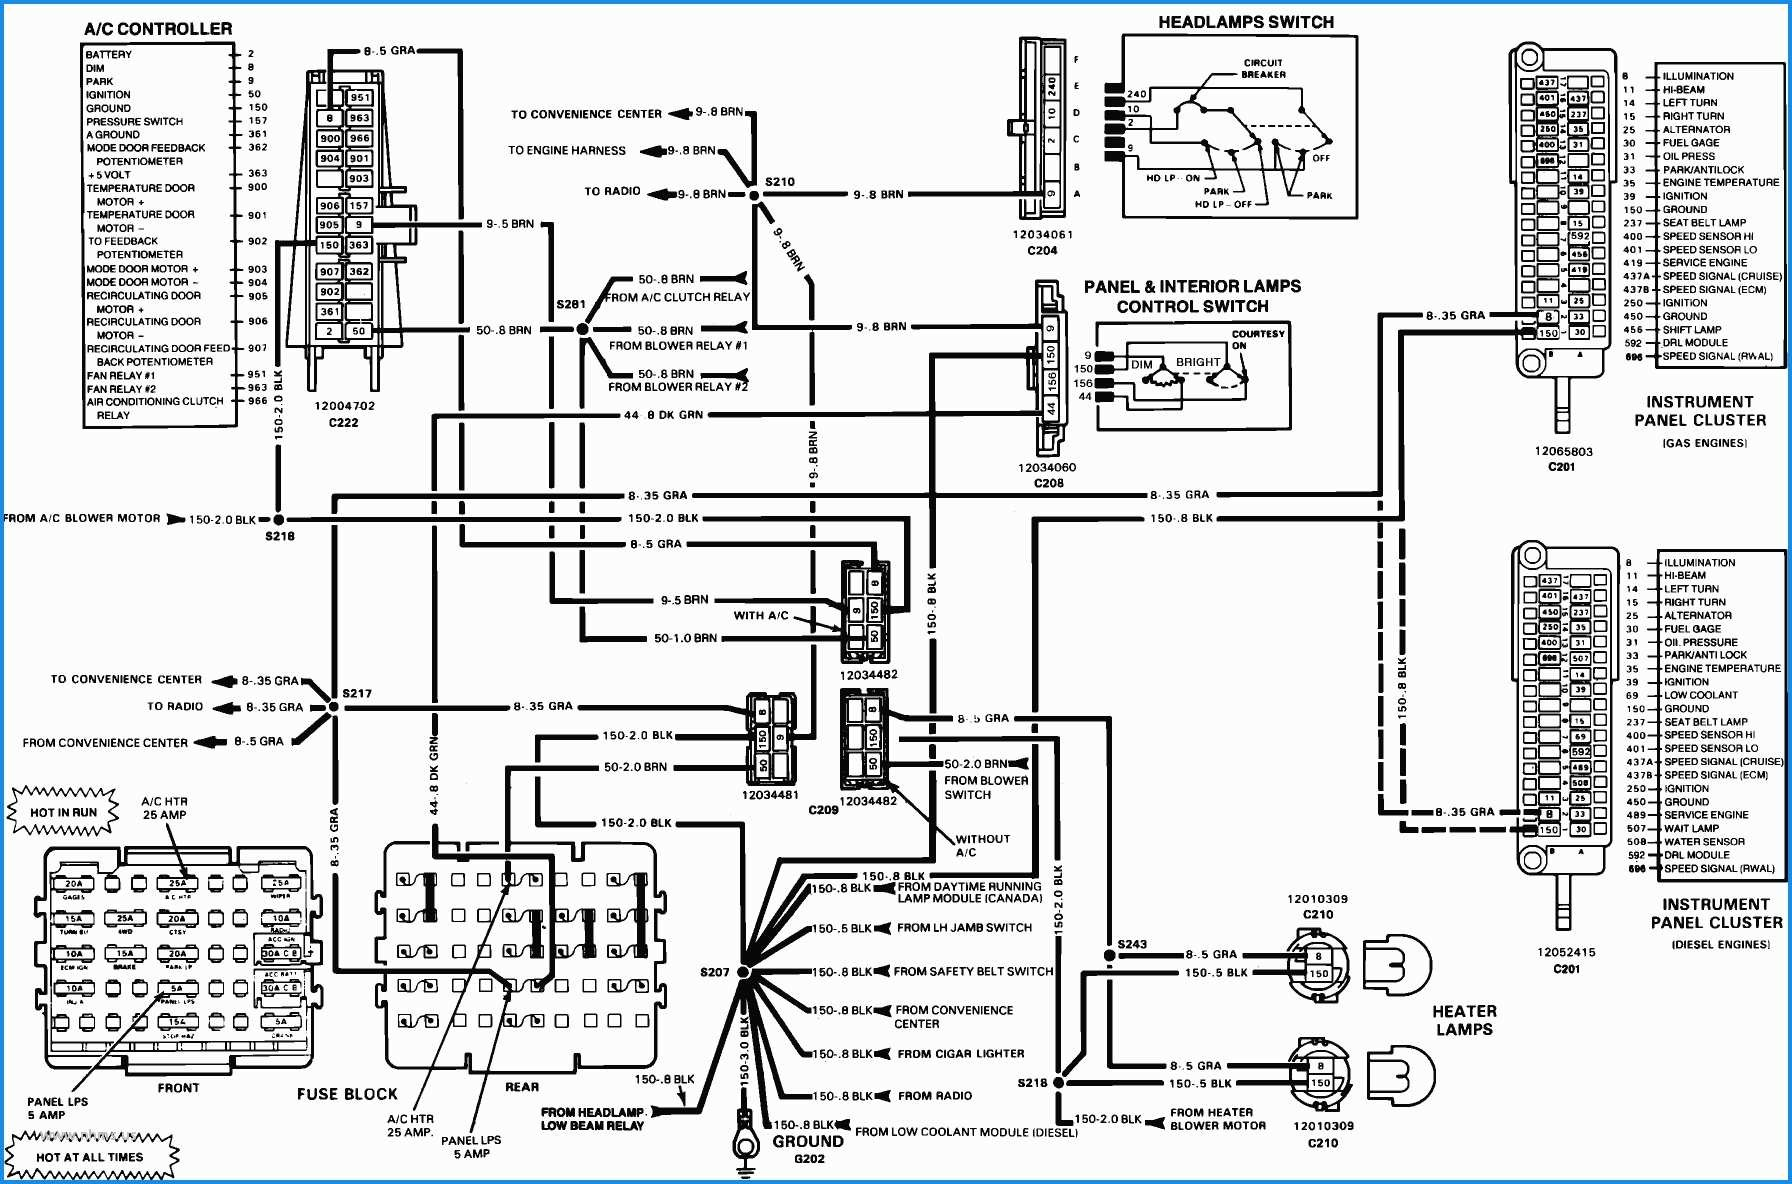 1993 Chey S 10 Headlight Wiring Diagram Diagram] 1984 Gmc High Sierra Wiring Diagram Full Version Hd Of 1993 Chey S 10 Headlight Wiring Diagram